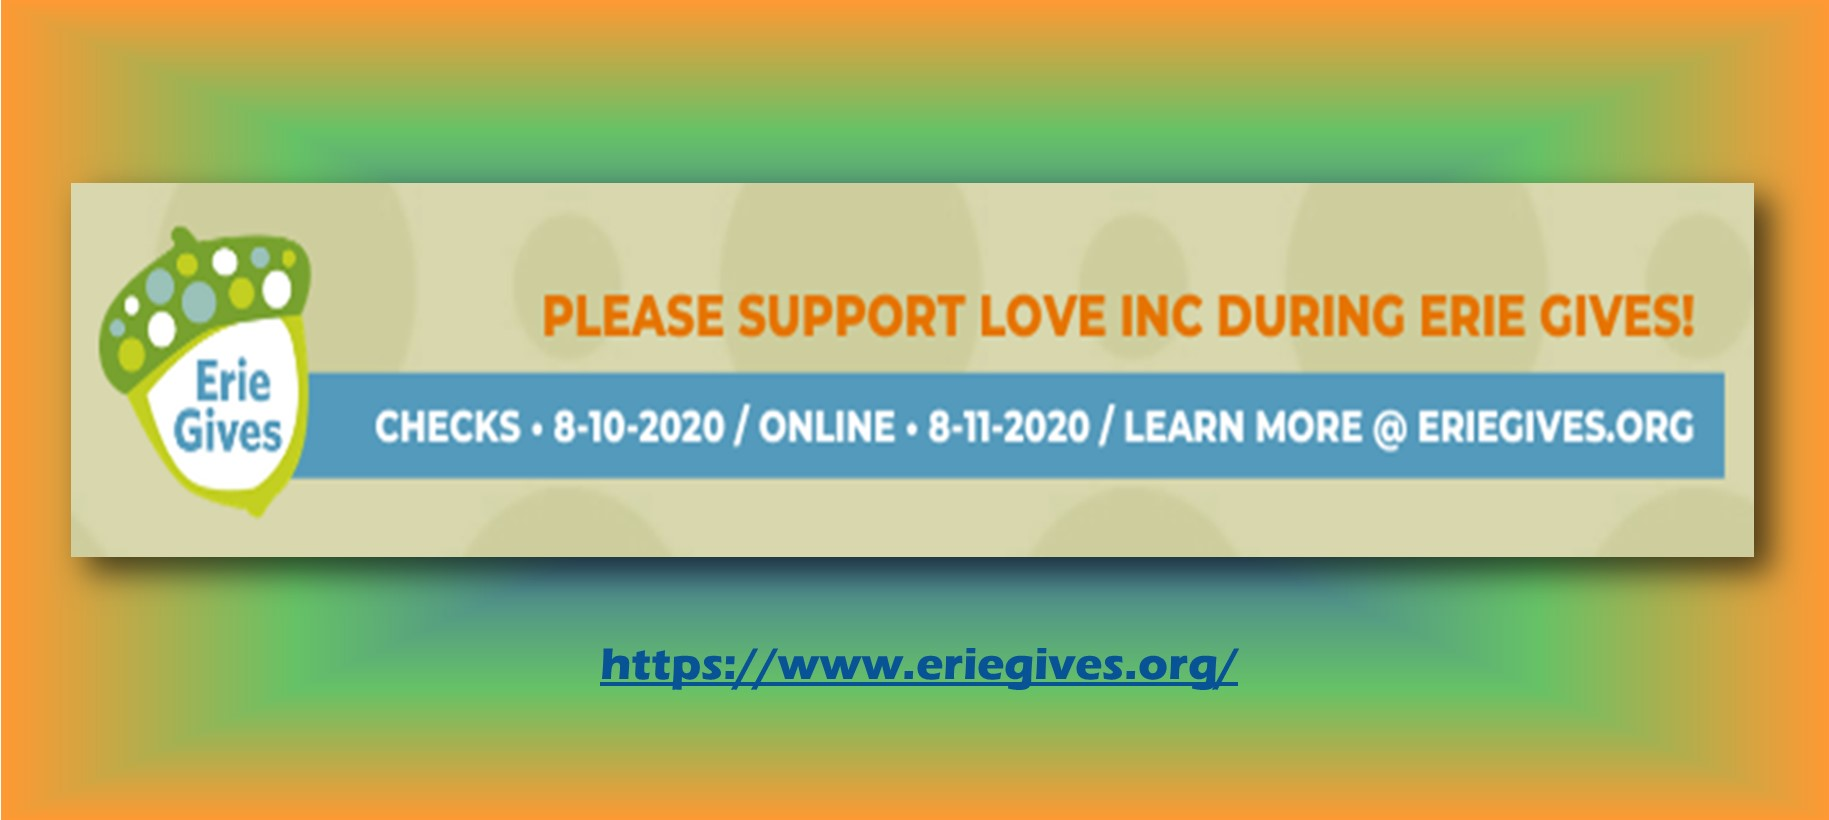 Erie gives for love inc